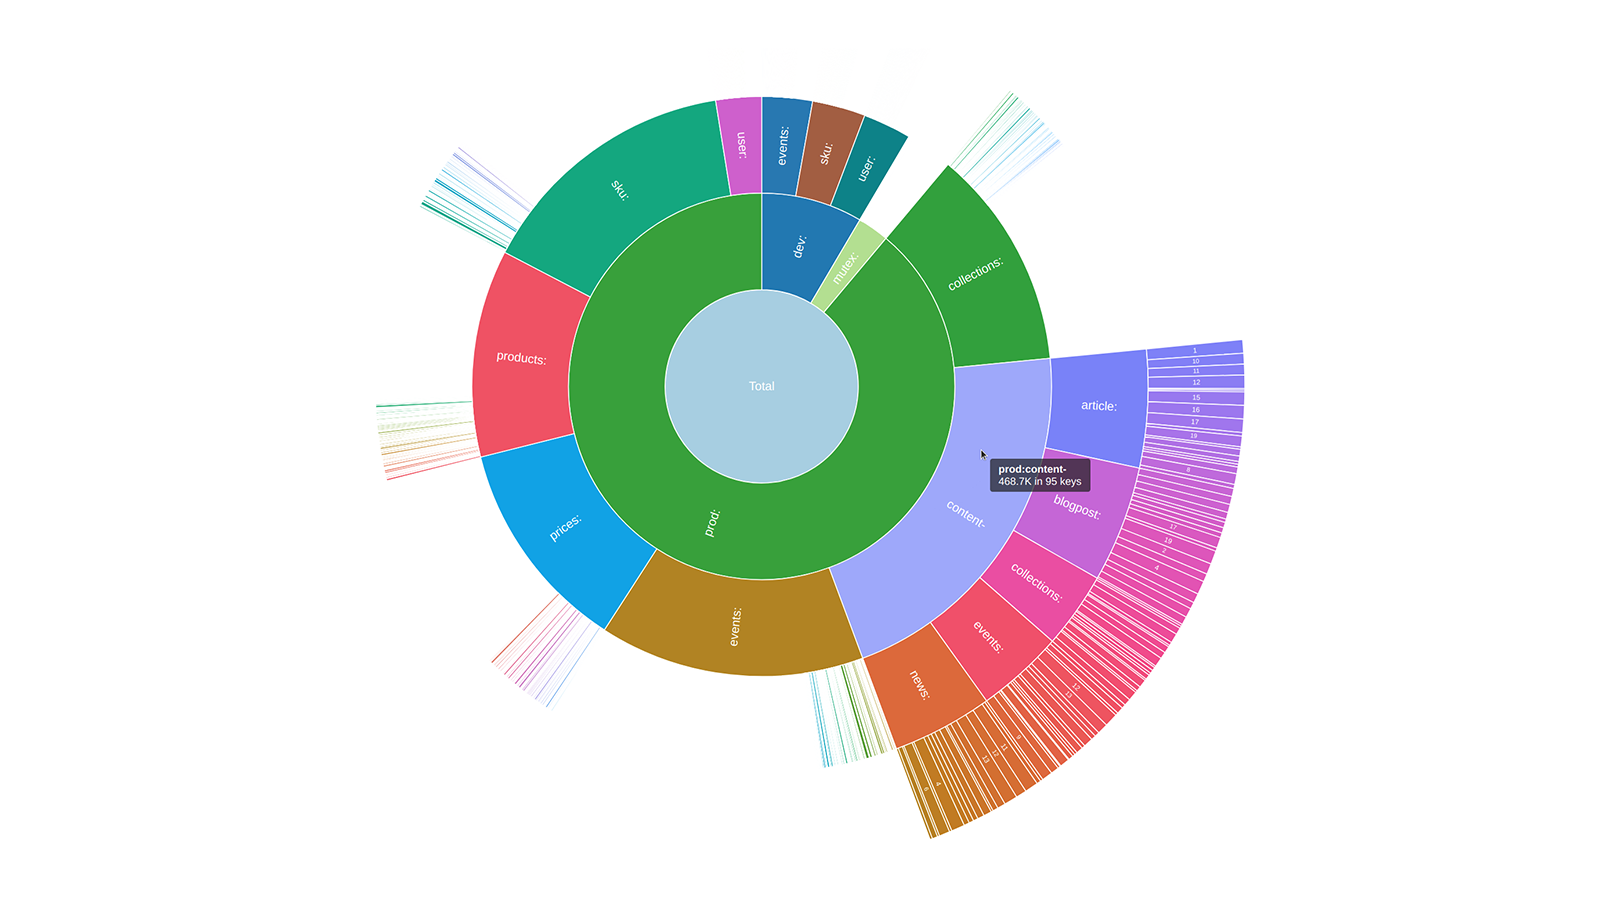 A sunburst diagram in open-source Redis Inventory tool, visualizing Redis memory usage hierarchically, built with the AnyChart JavaScript charting library